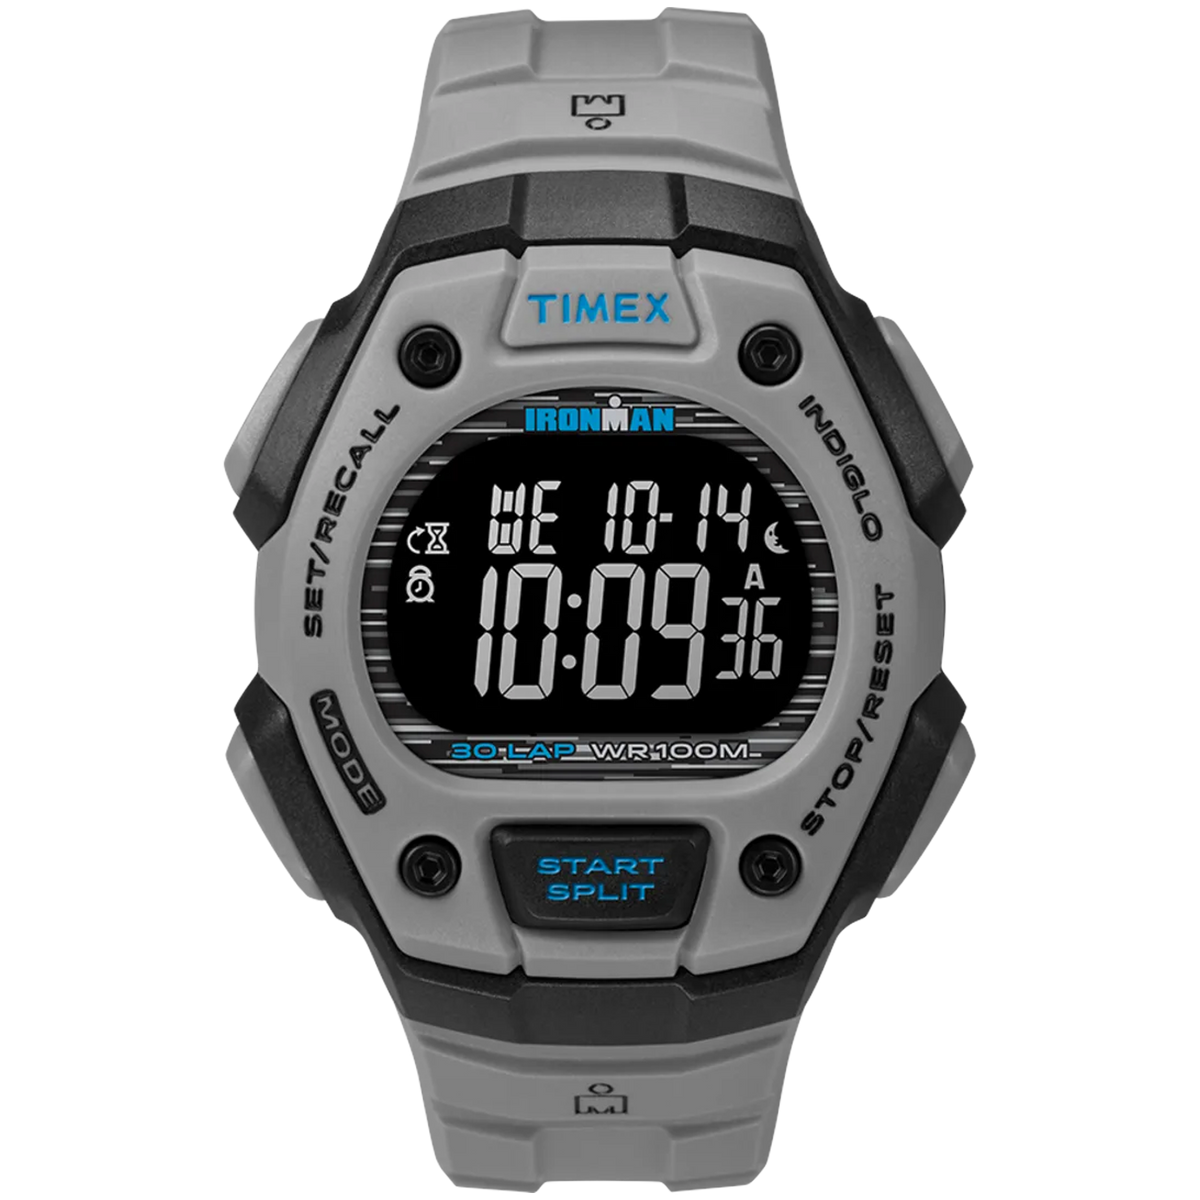 Timex - Ironman - Gray